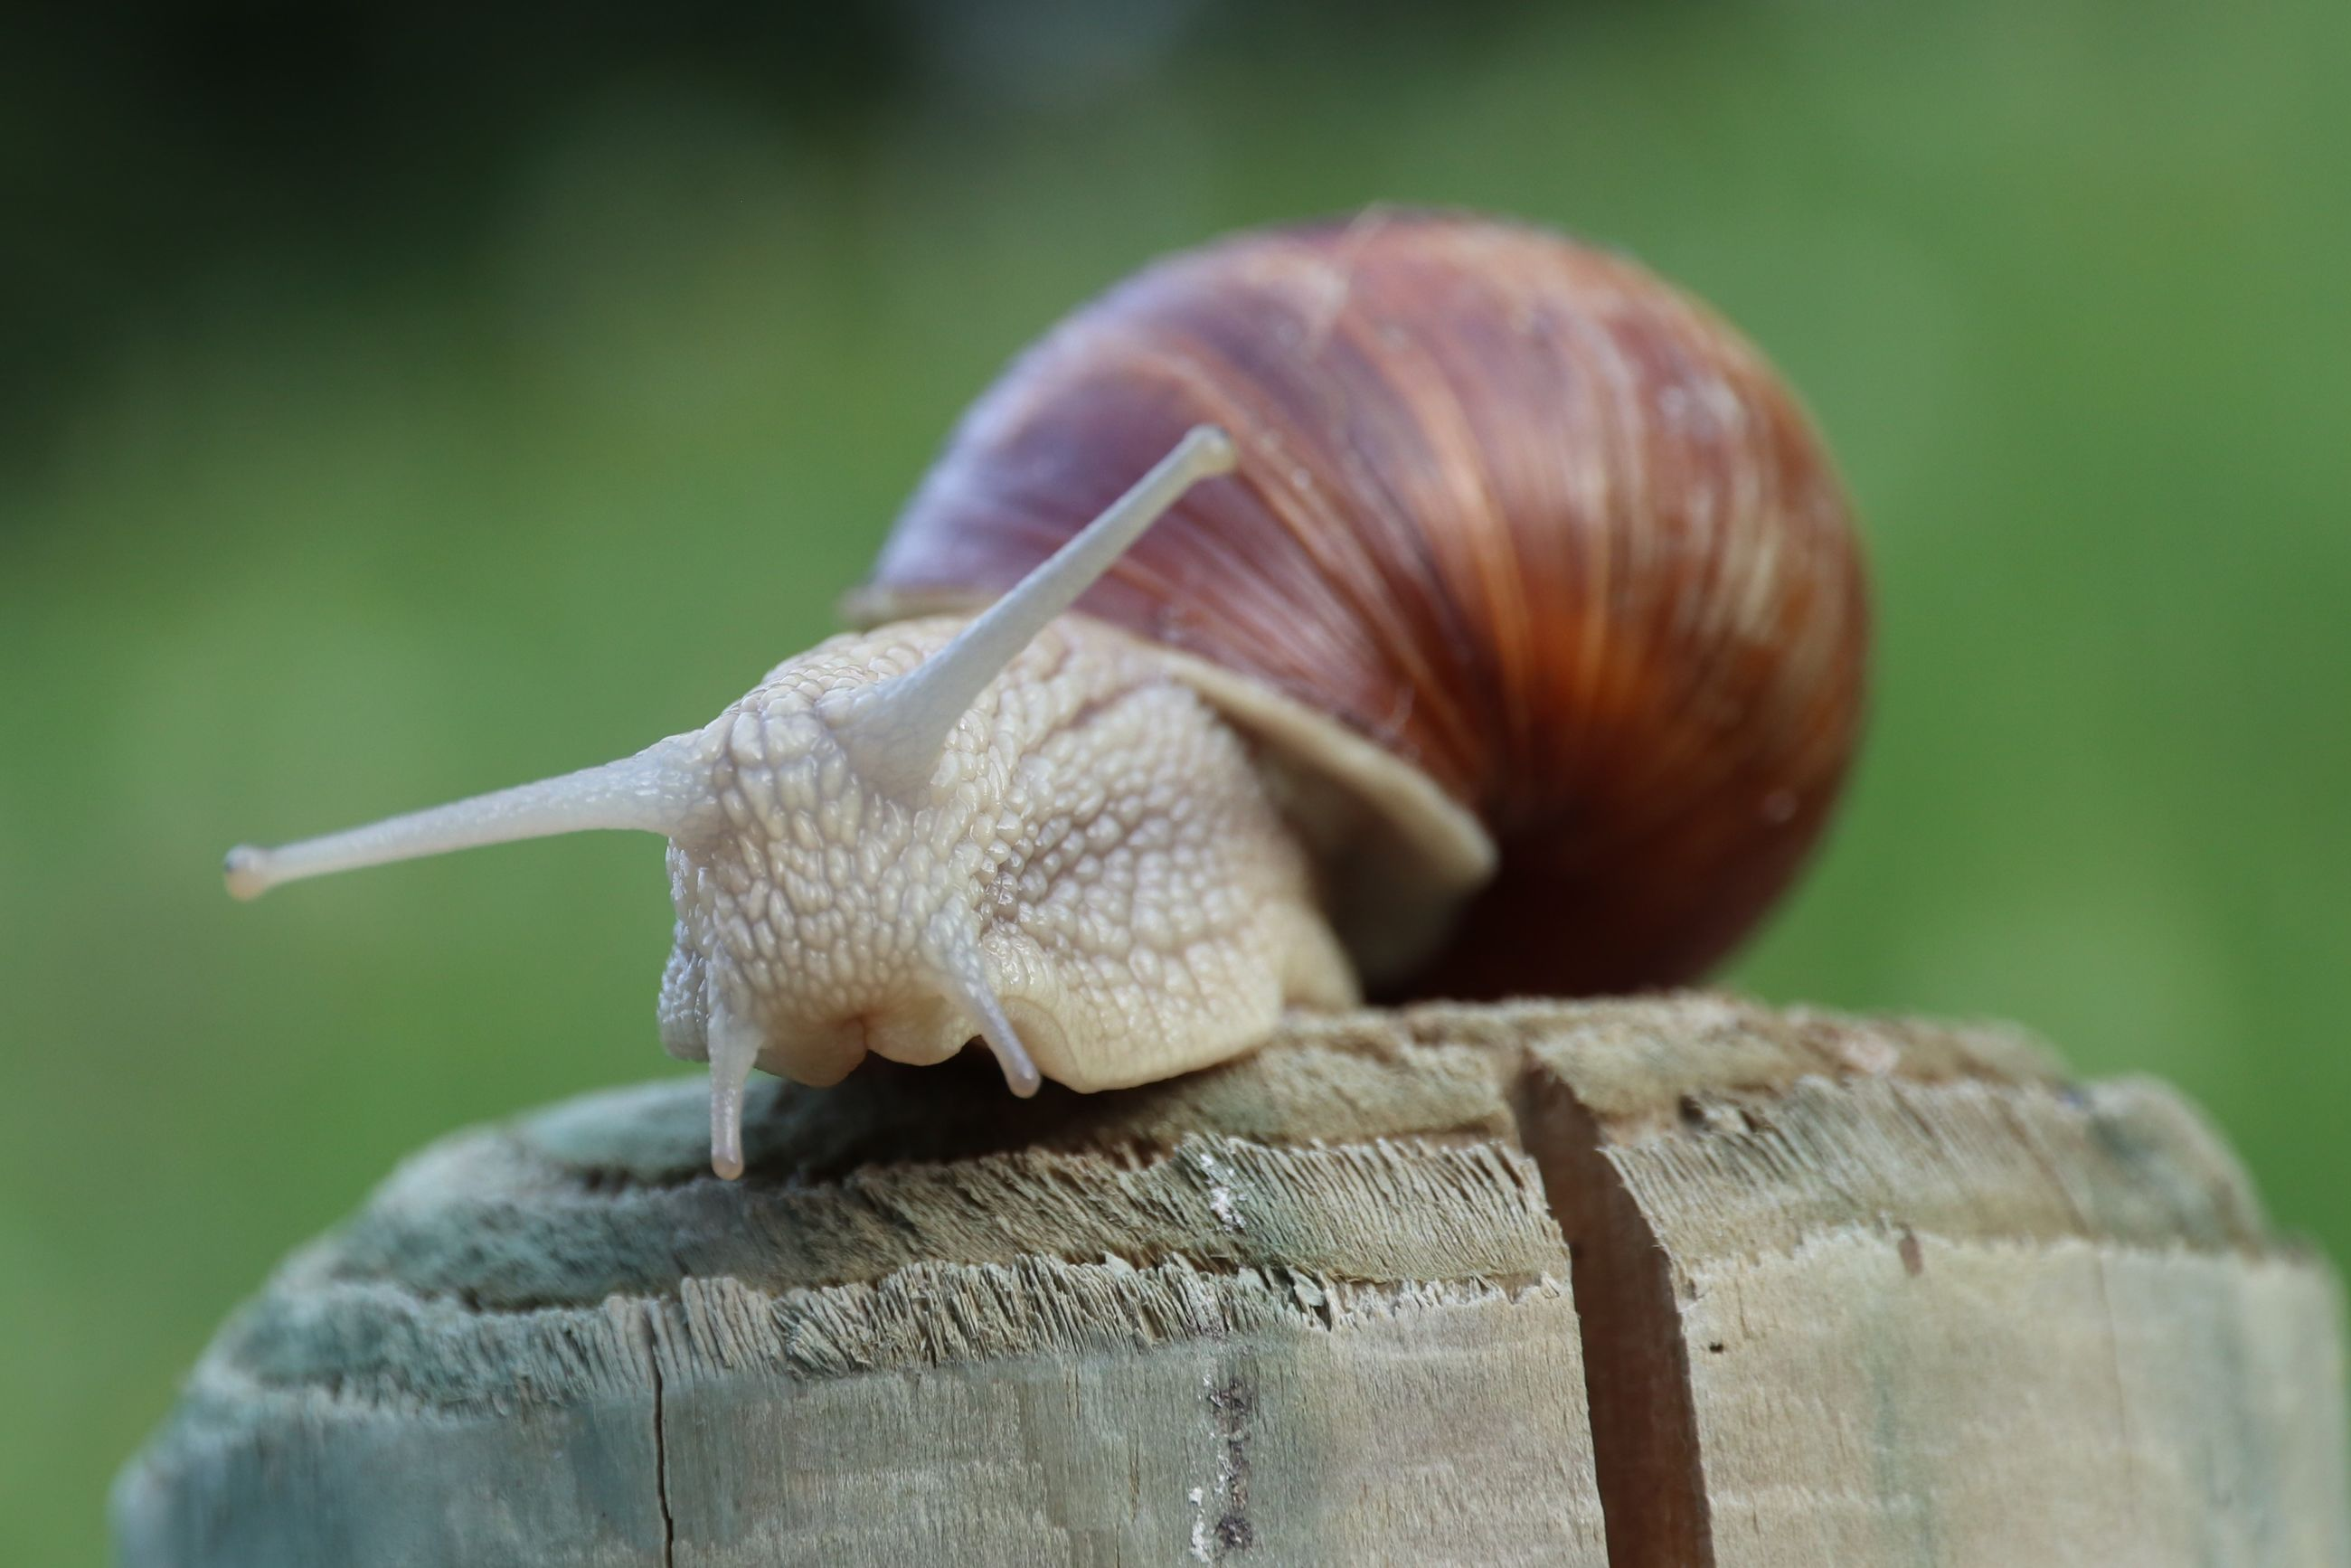 Animal Themes Focus On Foreground Snail Vineyard Snail